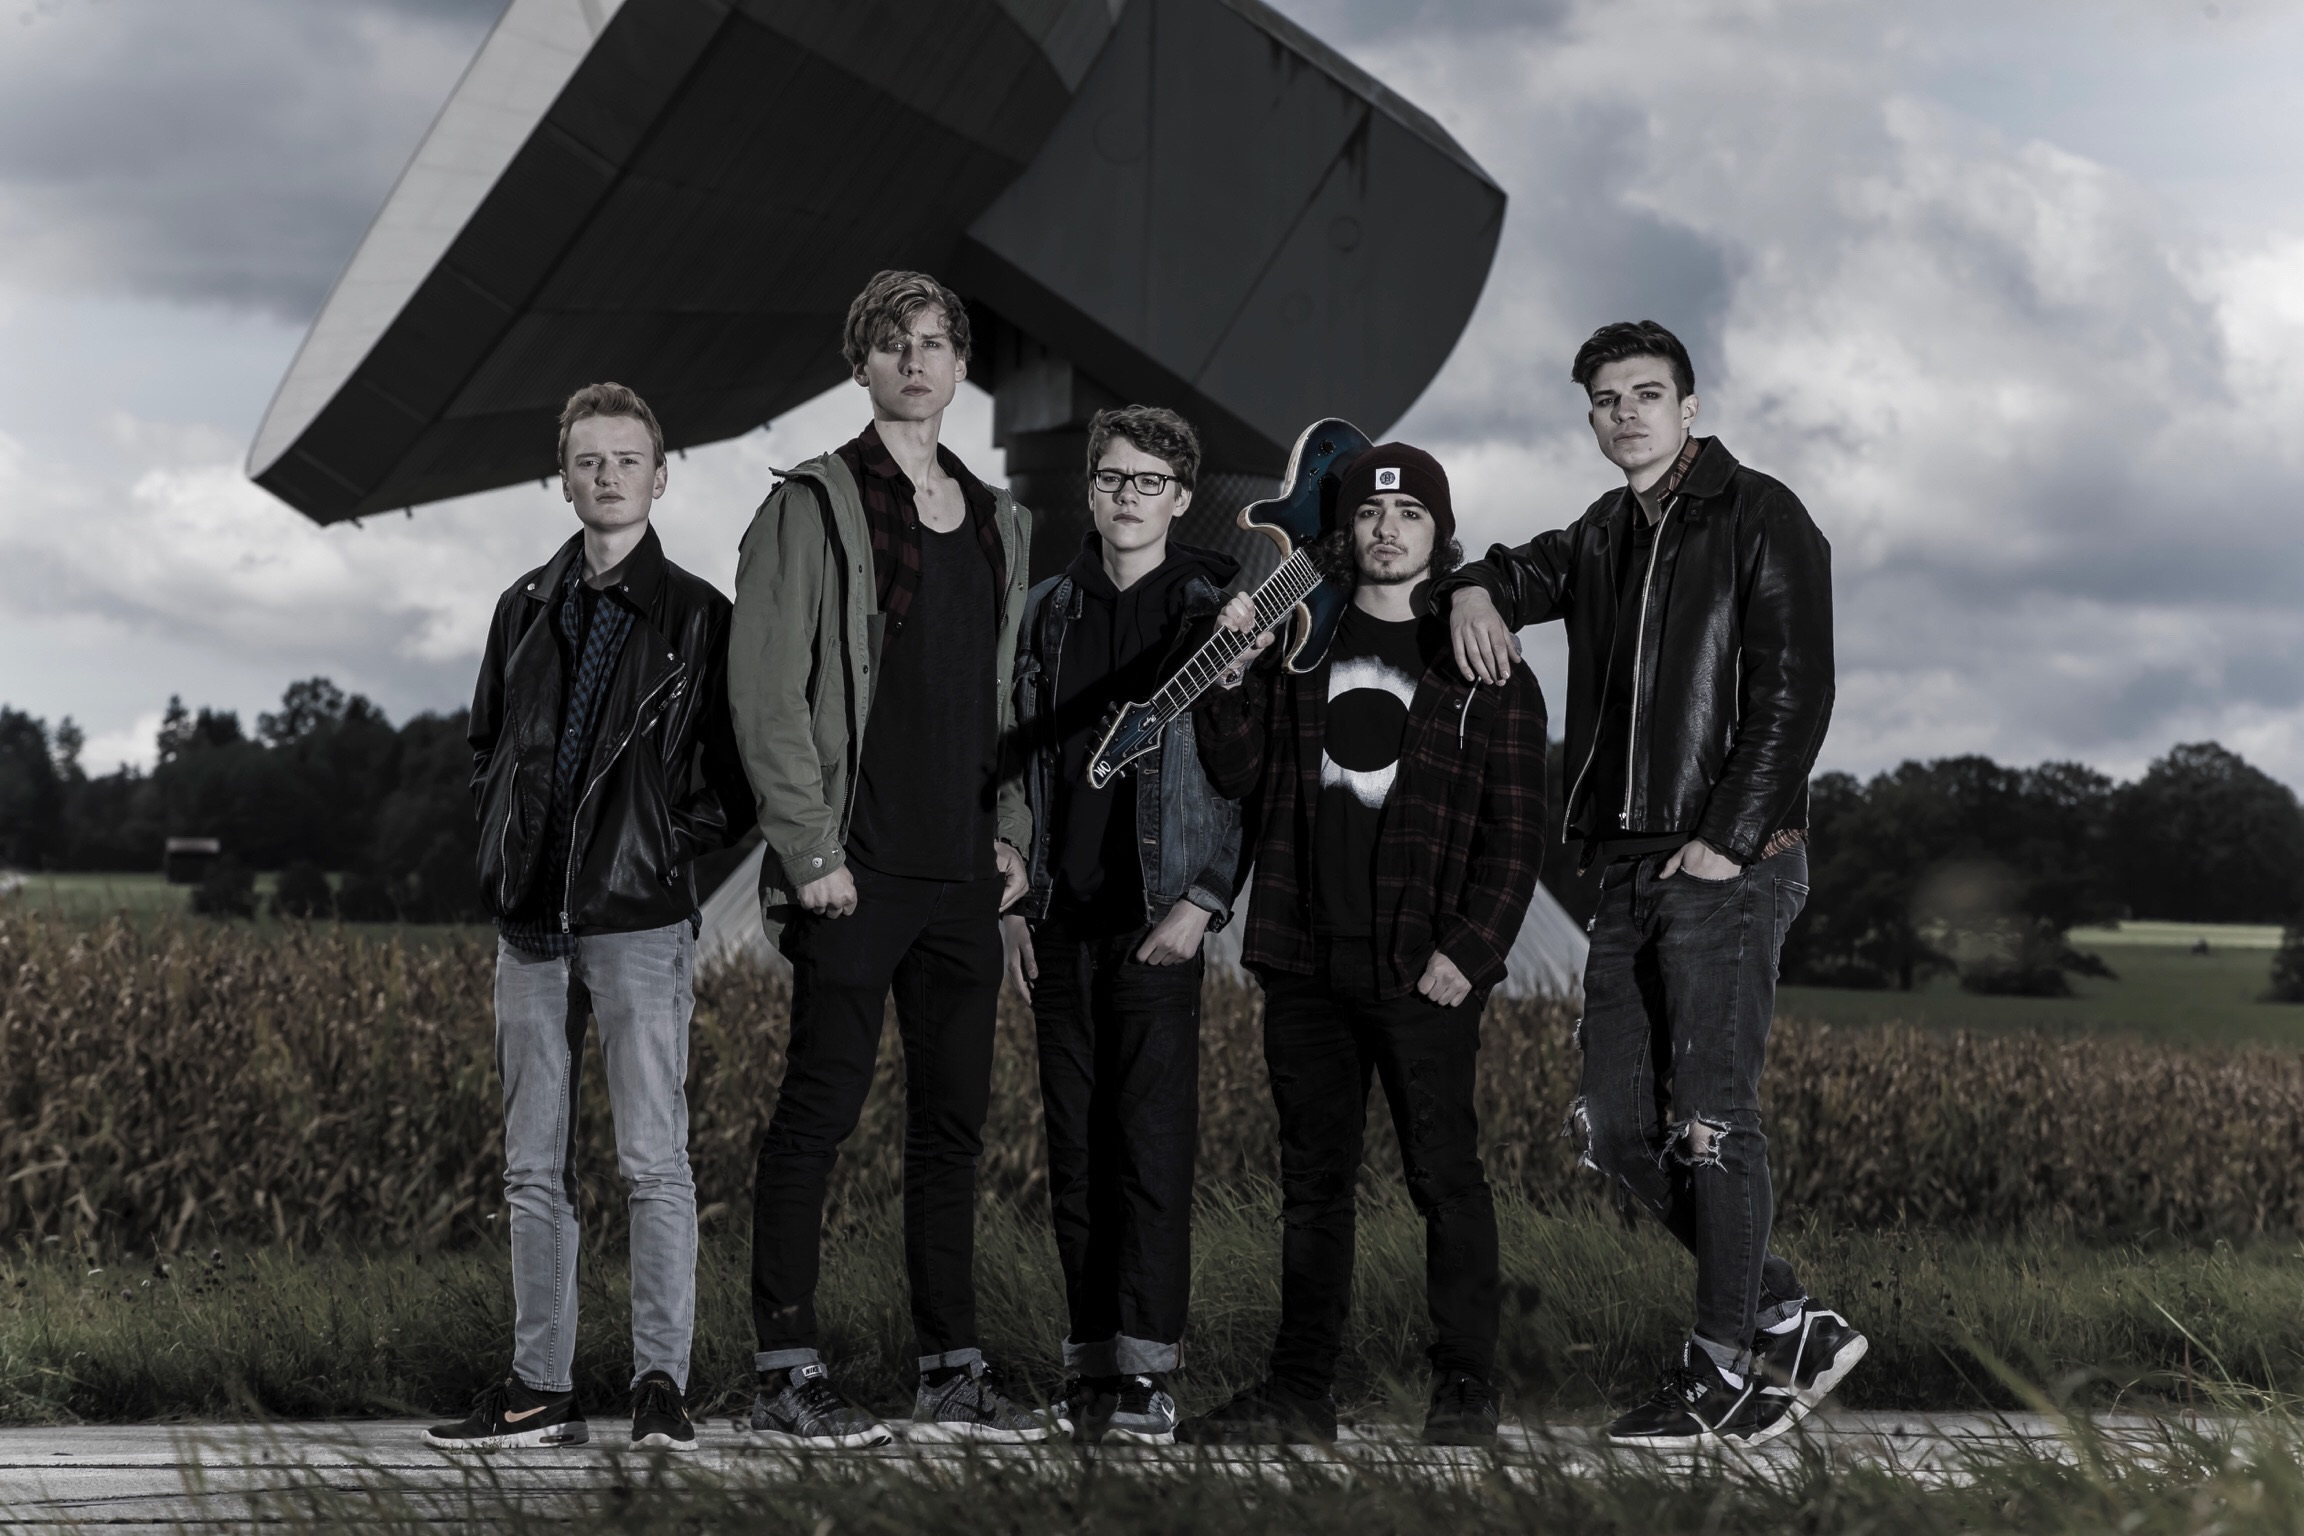 beyond-brigthness-crowdfunding-aktion-zum-debut-album